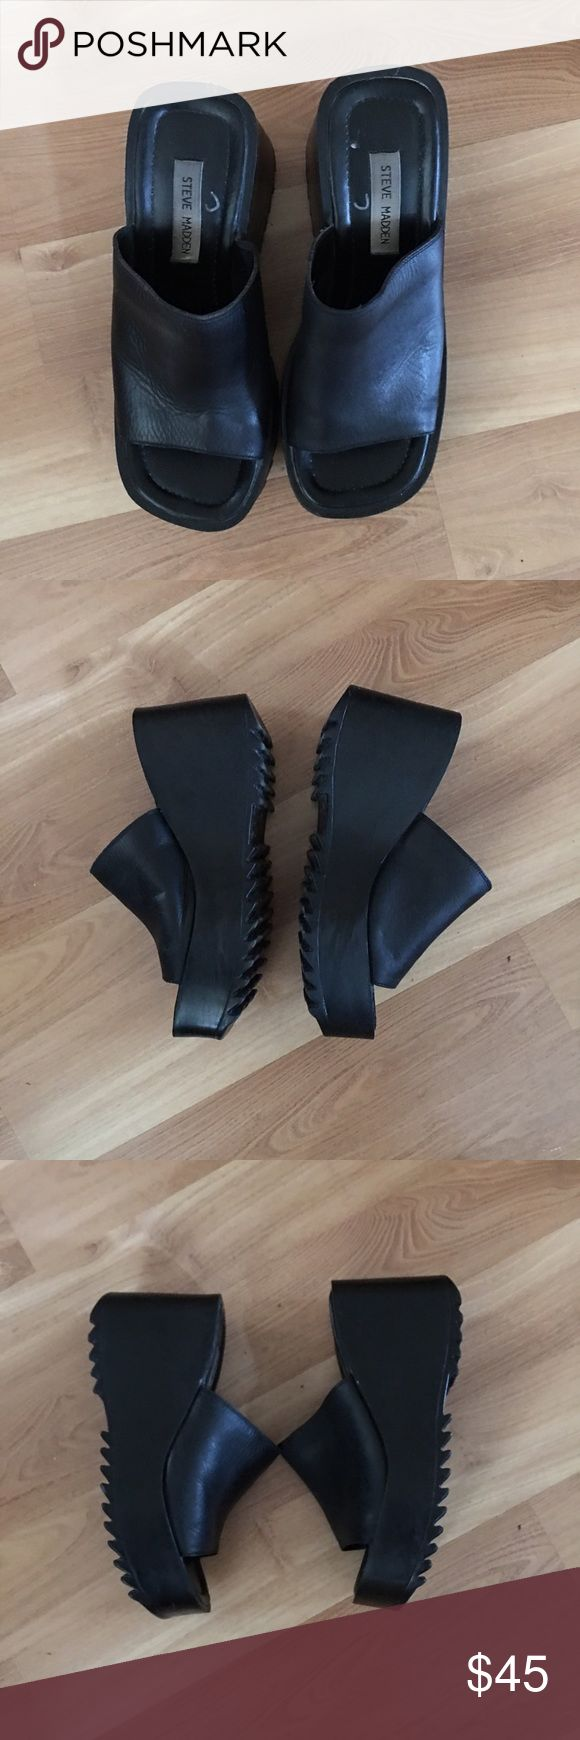 Steve madden wedges size 9 Some normal signs of wear.. it is a size 9.shoes is in very good used condition. Item location: Bin #02 Steve Madden Shoes Wedges